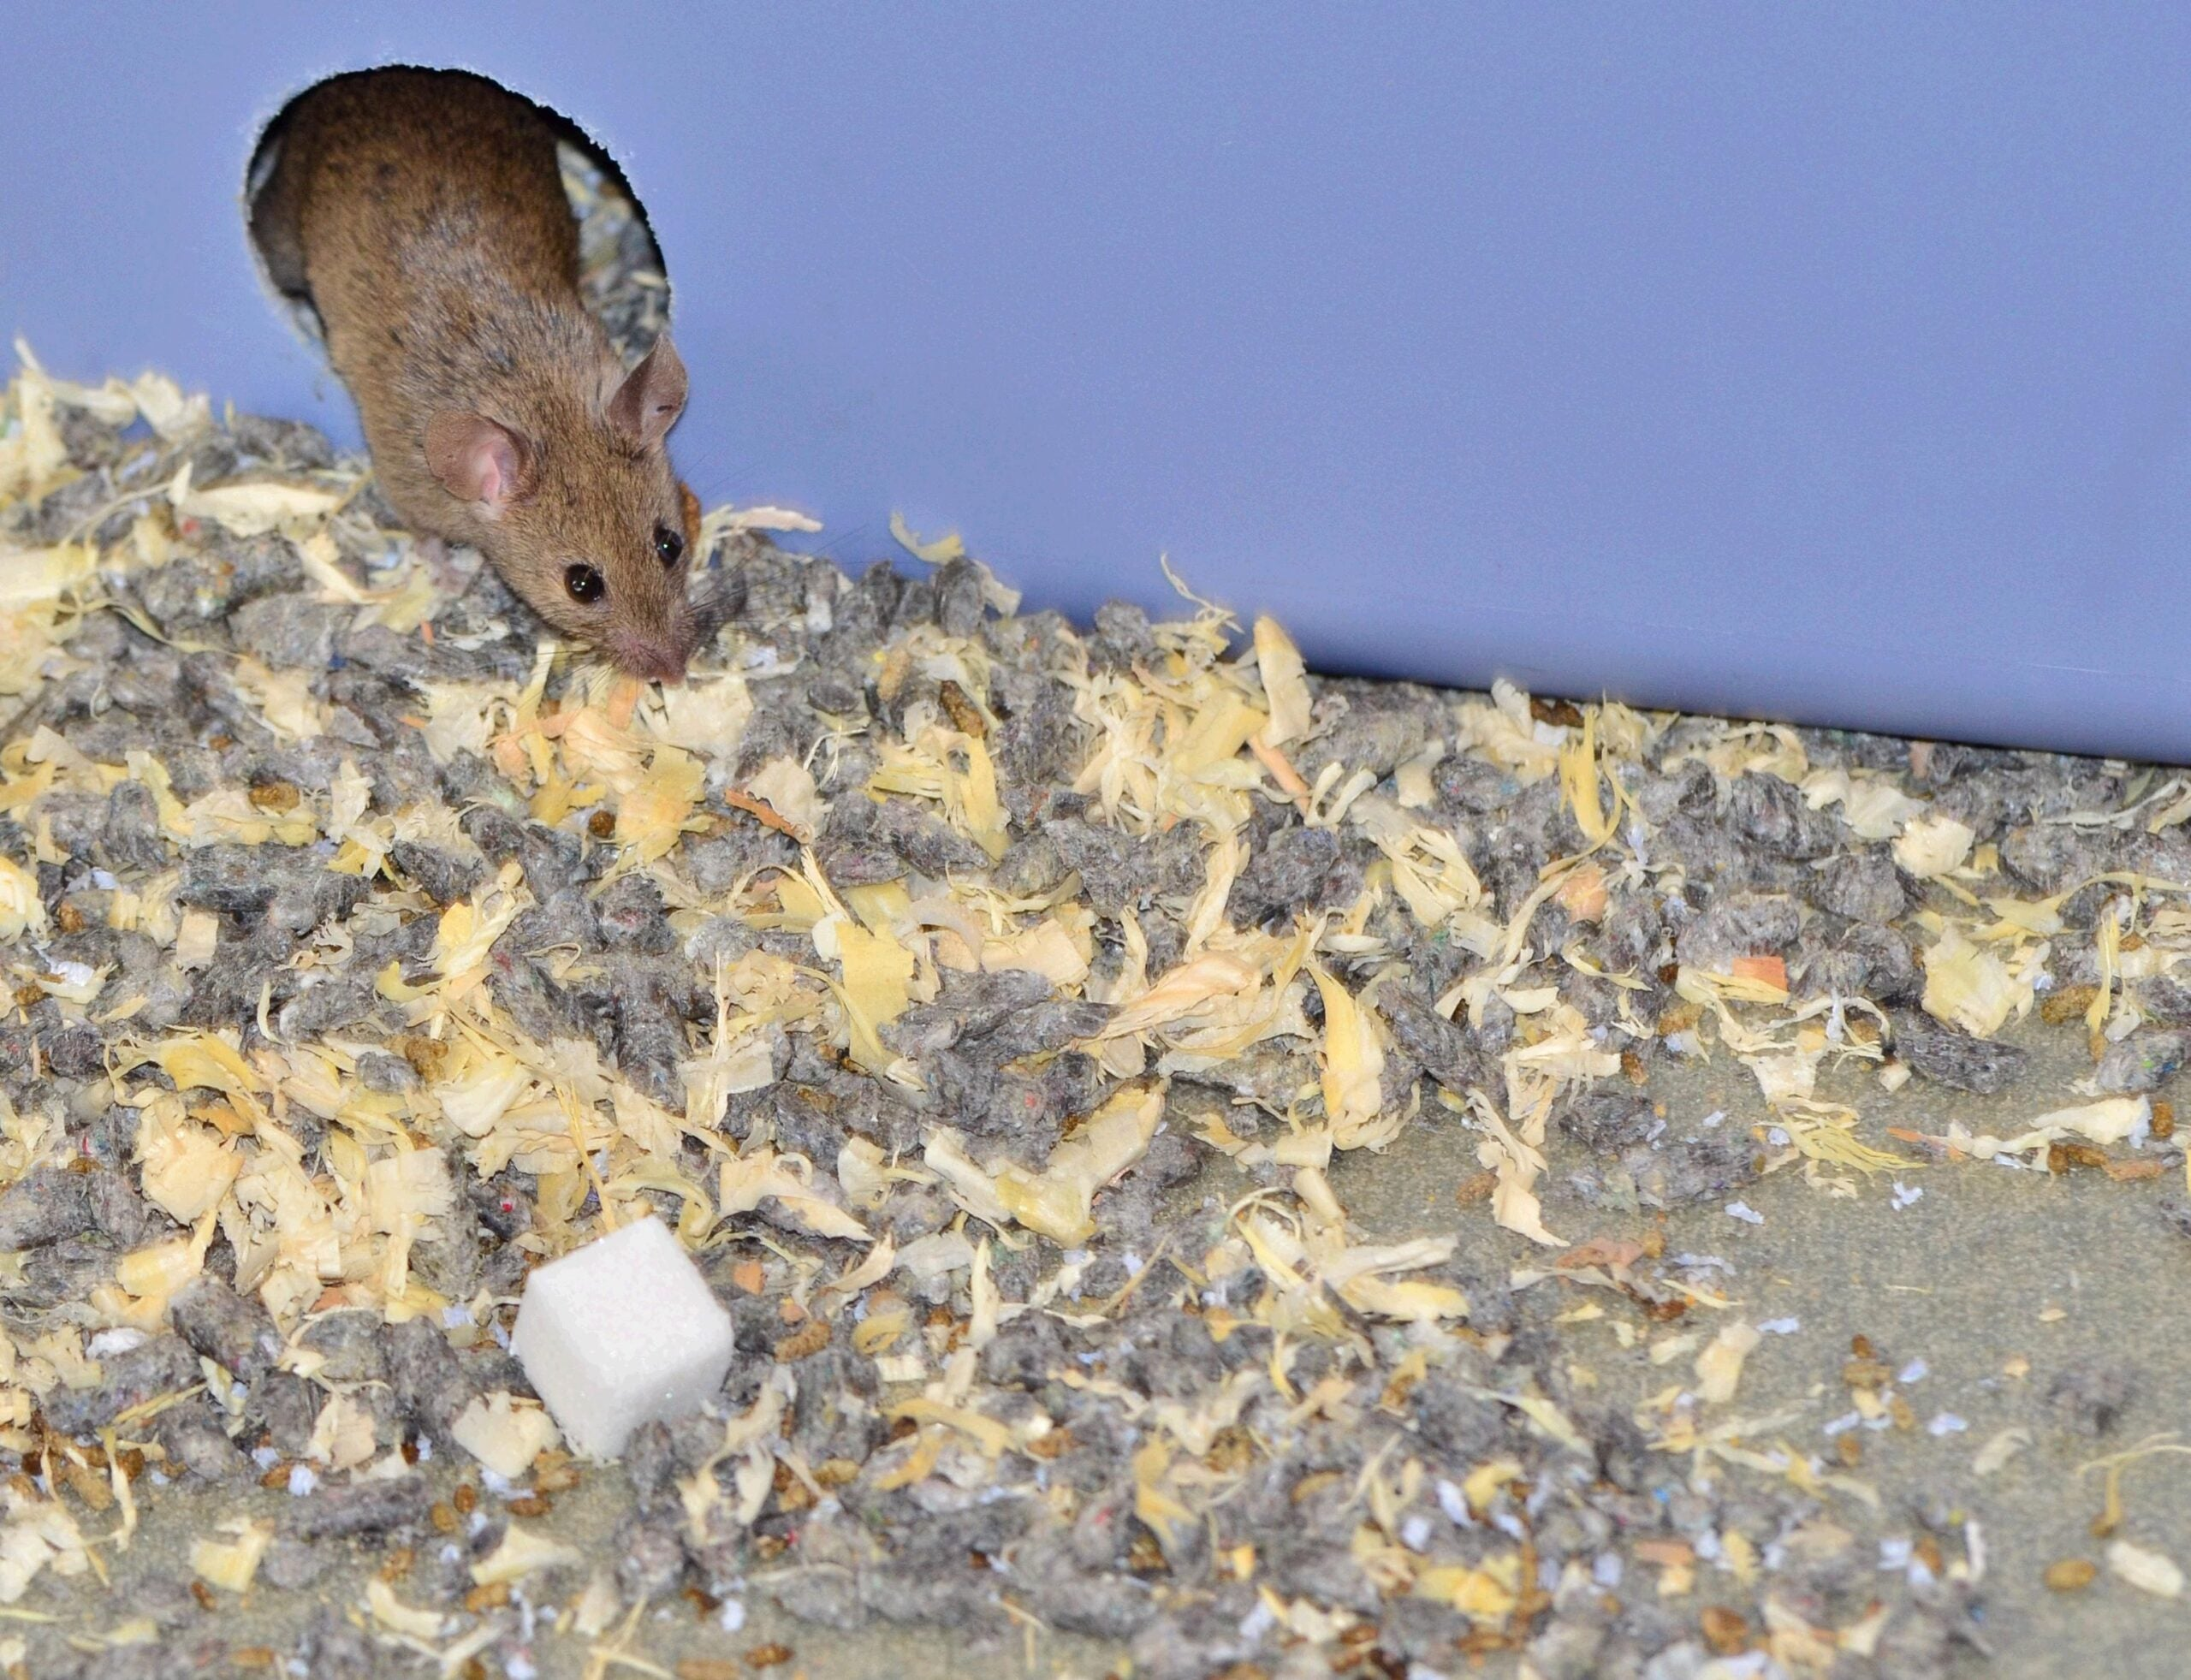 [Updated] Study: Sugar-Munching Mice Die Earlier